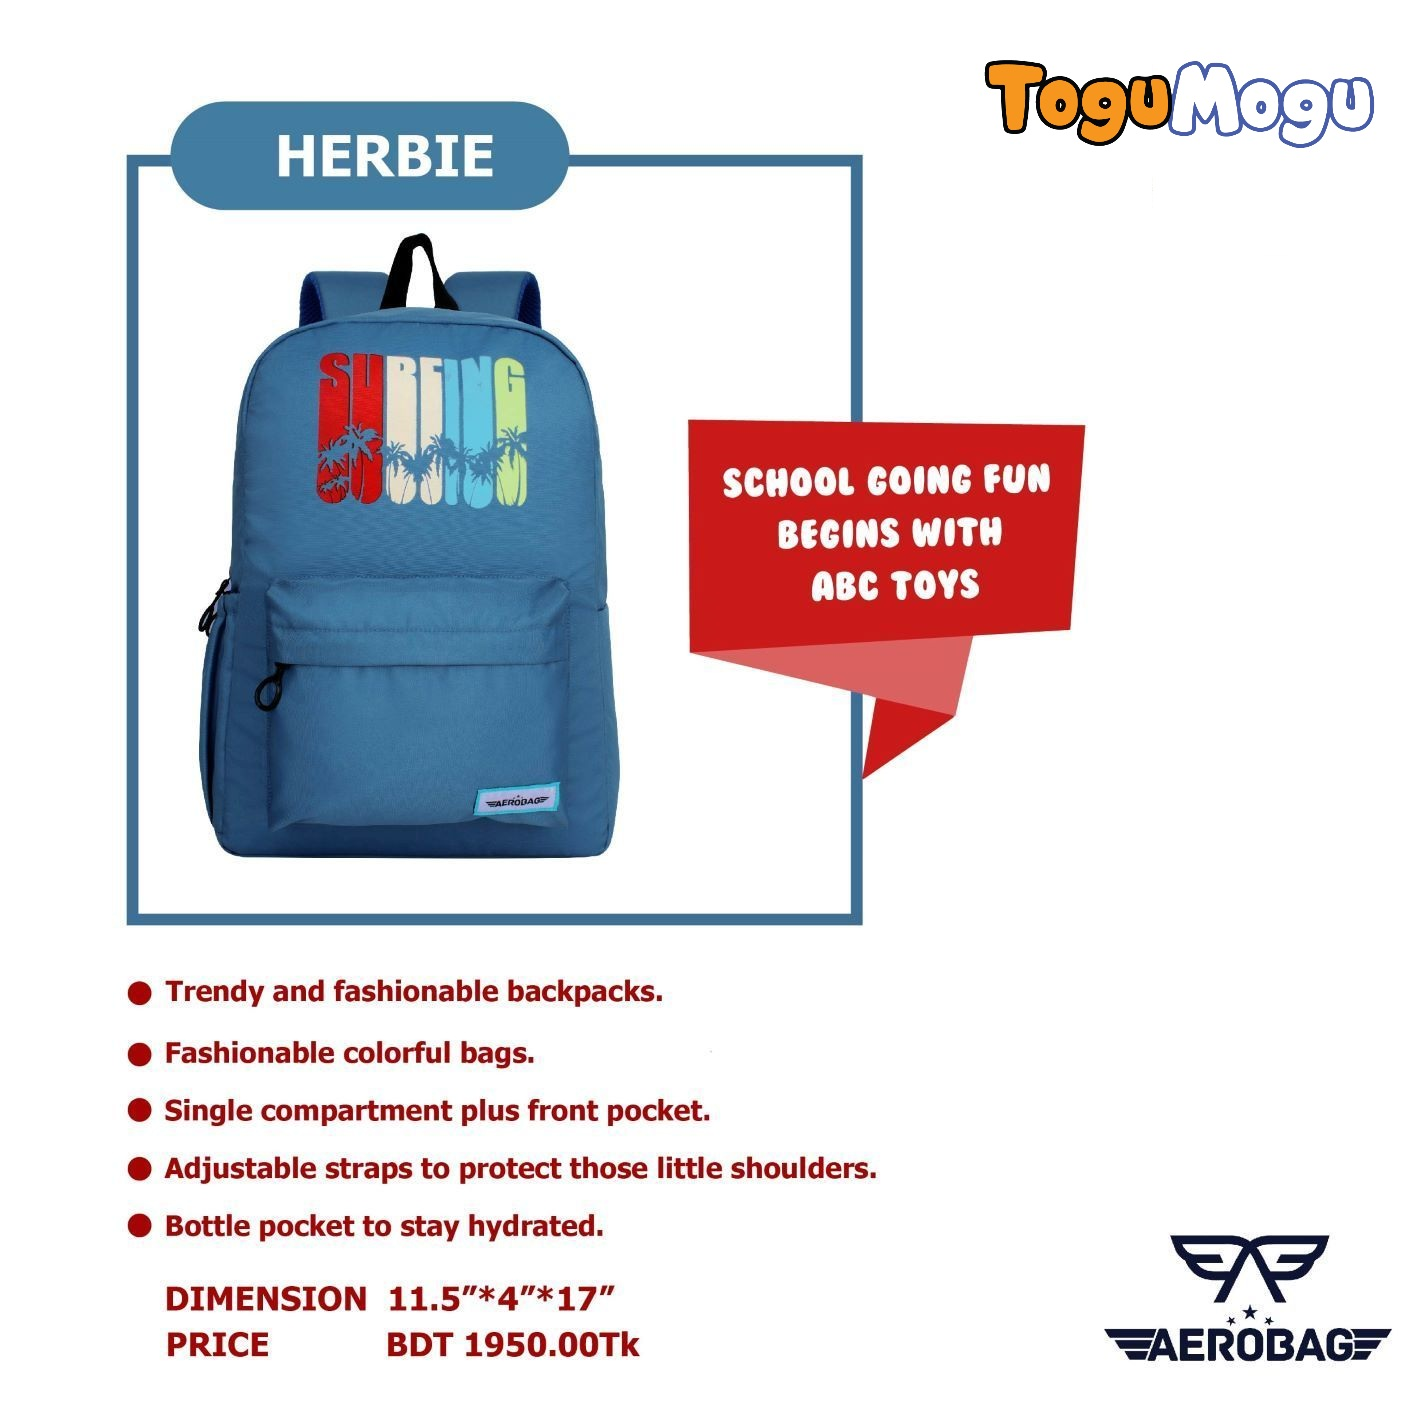 AEROBAG AER046 Herbie Surfing